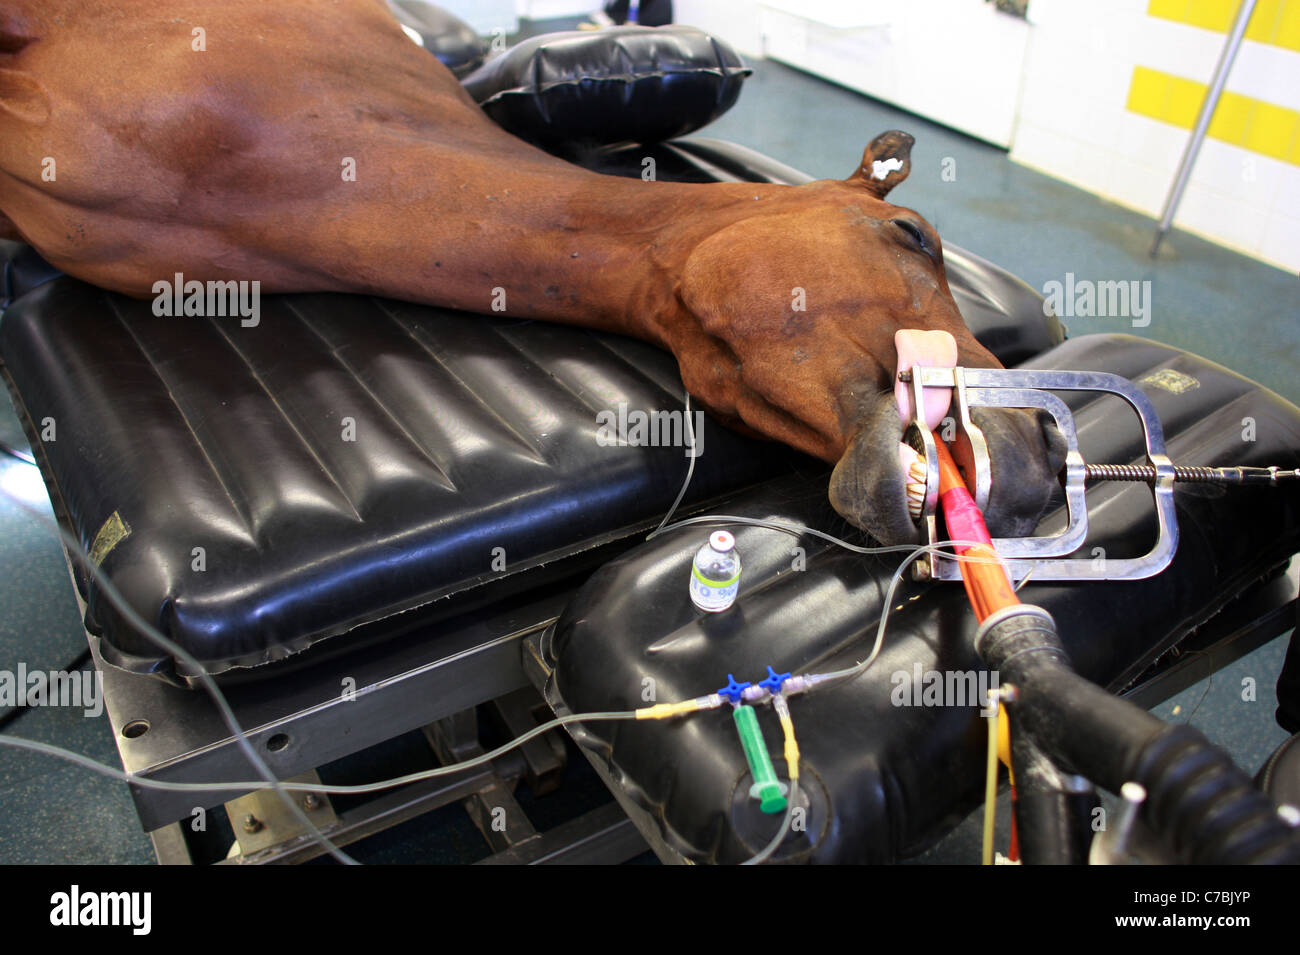 An anesthetized horse lying on an operating table - Stock Image